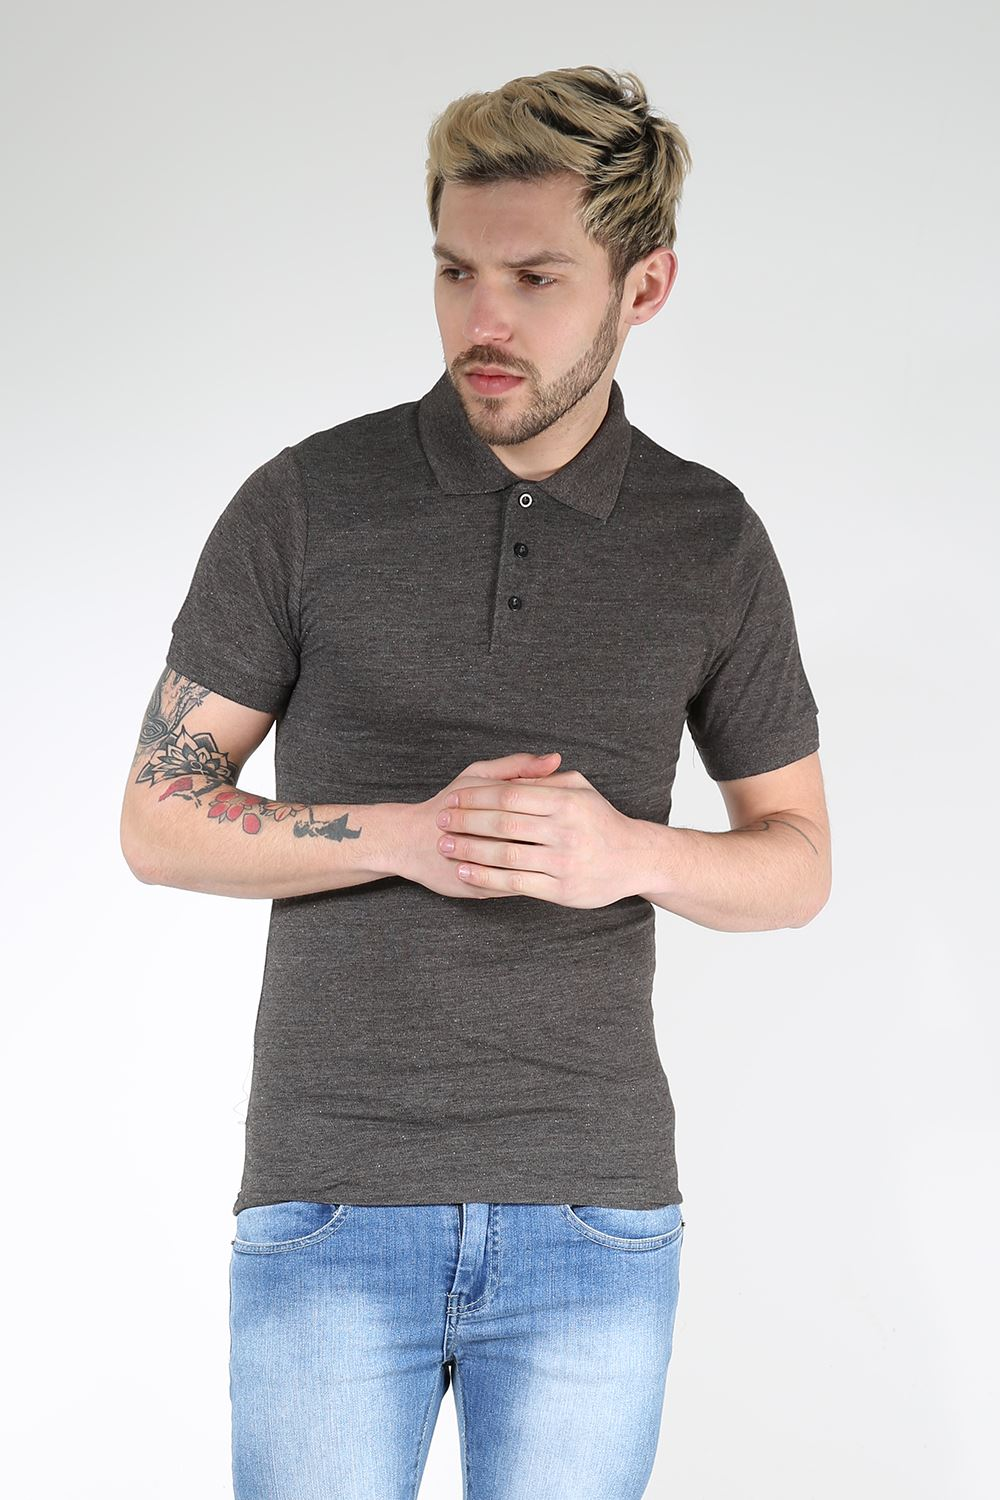 Mens polo t shirt cuffed short sleeves button up collar for Mens collared t shirts